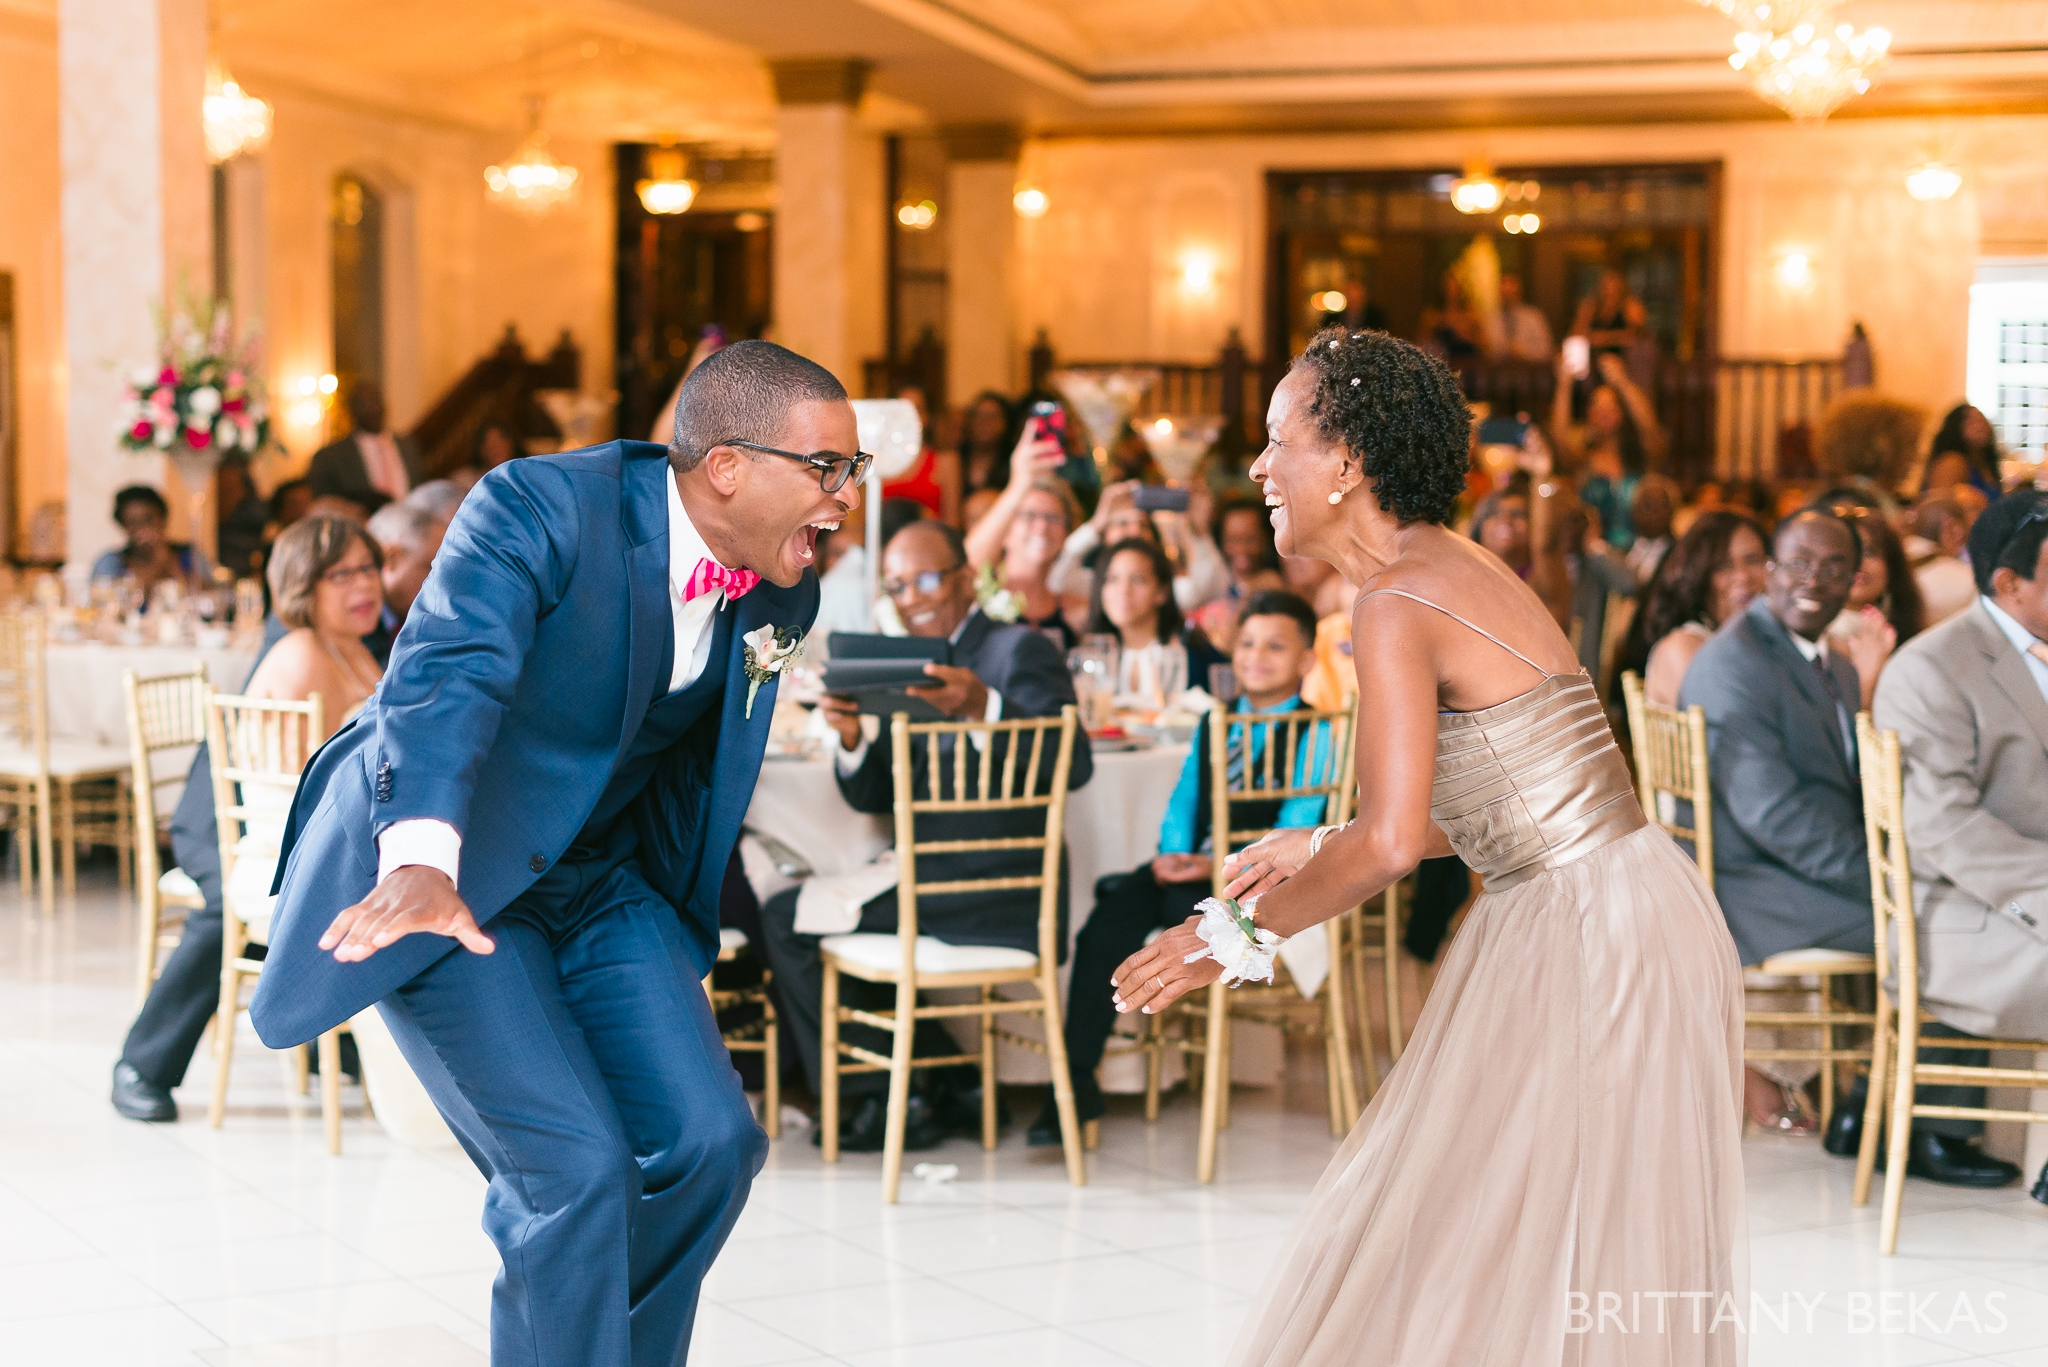 Patrick Haley Mansion Wedding - Brittany Bekas Photography_0038